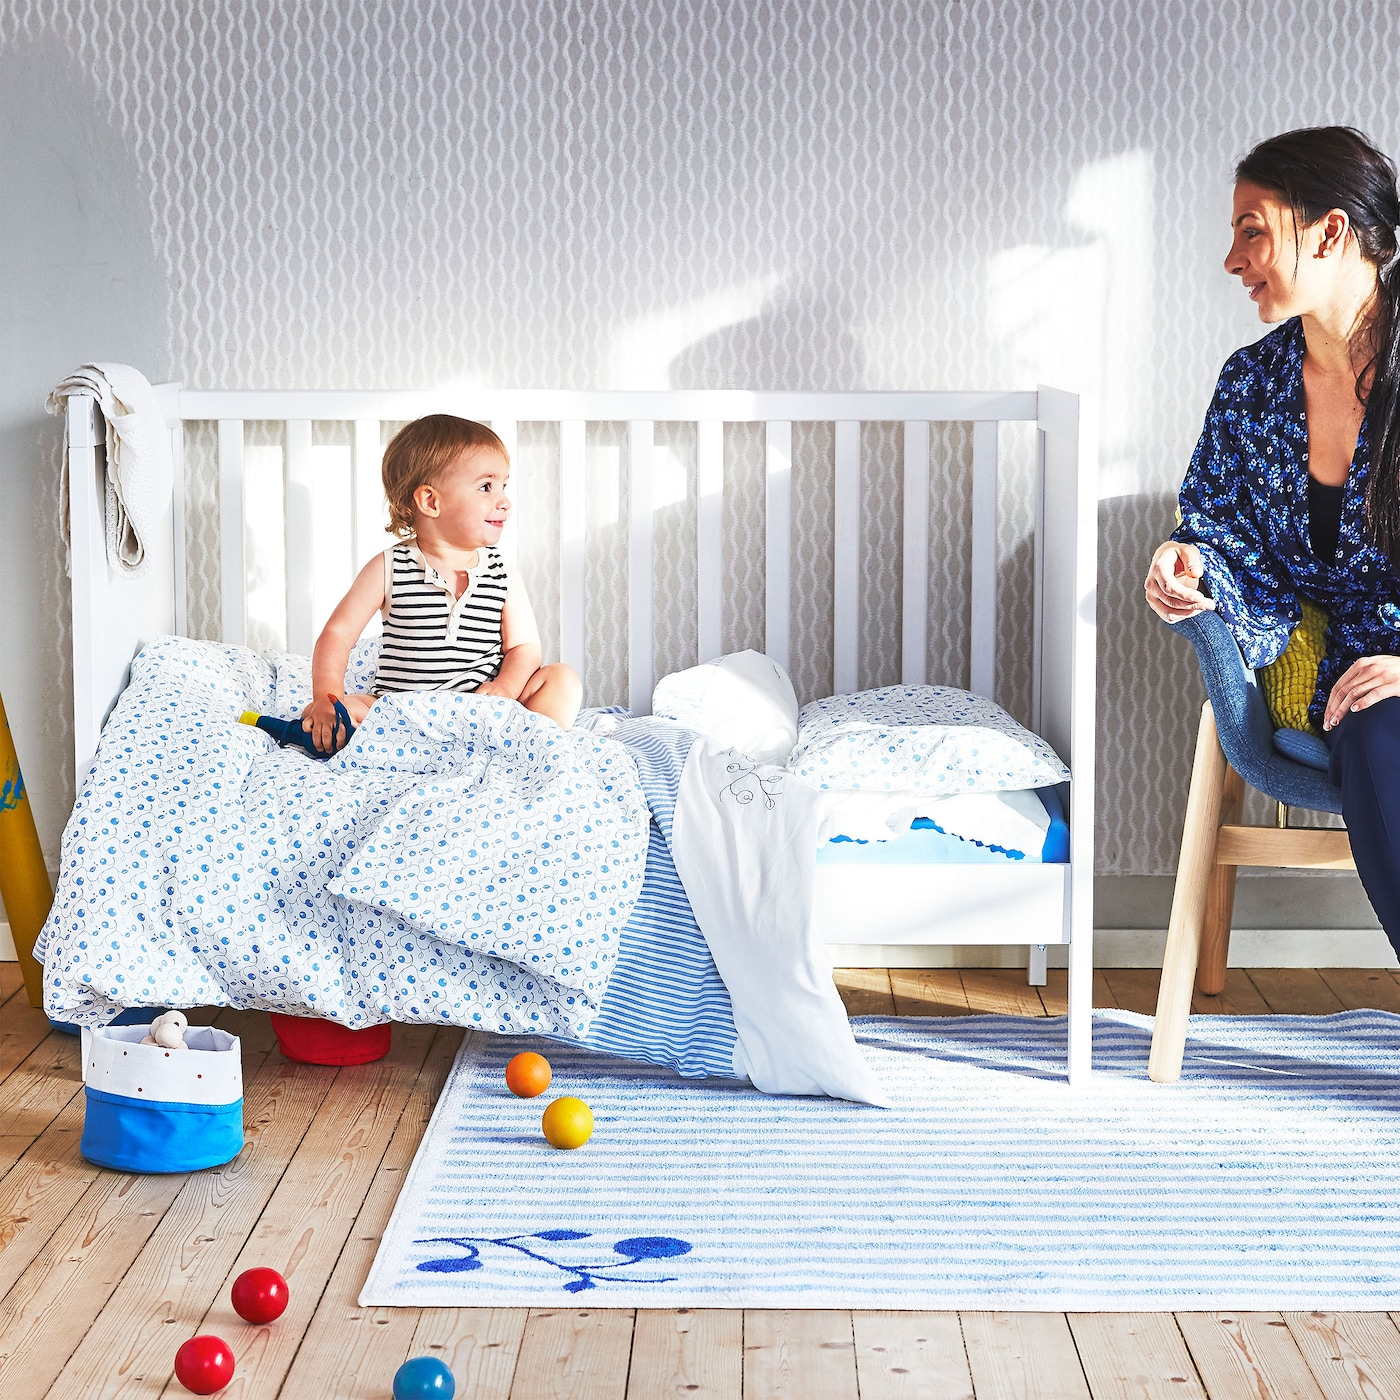 A woman watches a baby on a bed with blue and white GULSPARV baby textiles. A striped GULSPARV rug is in the foreground.